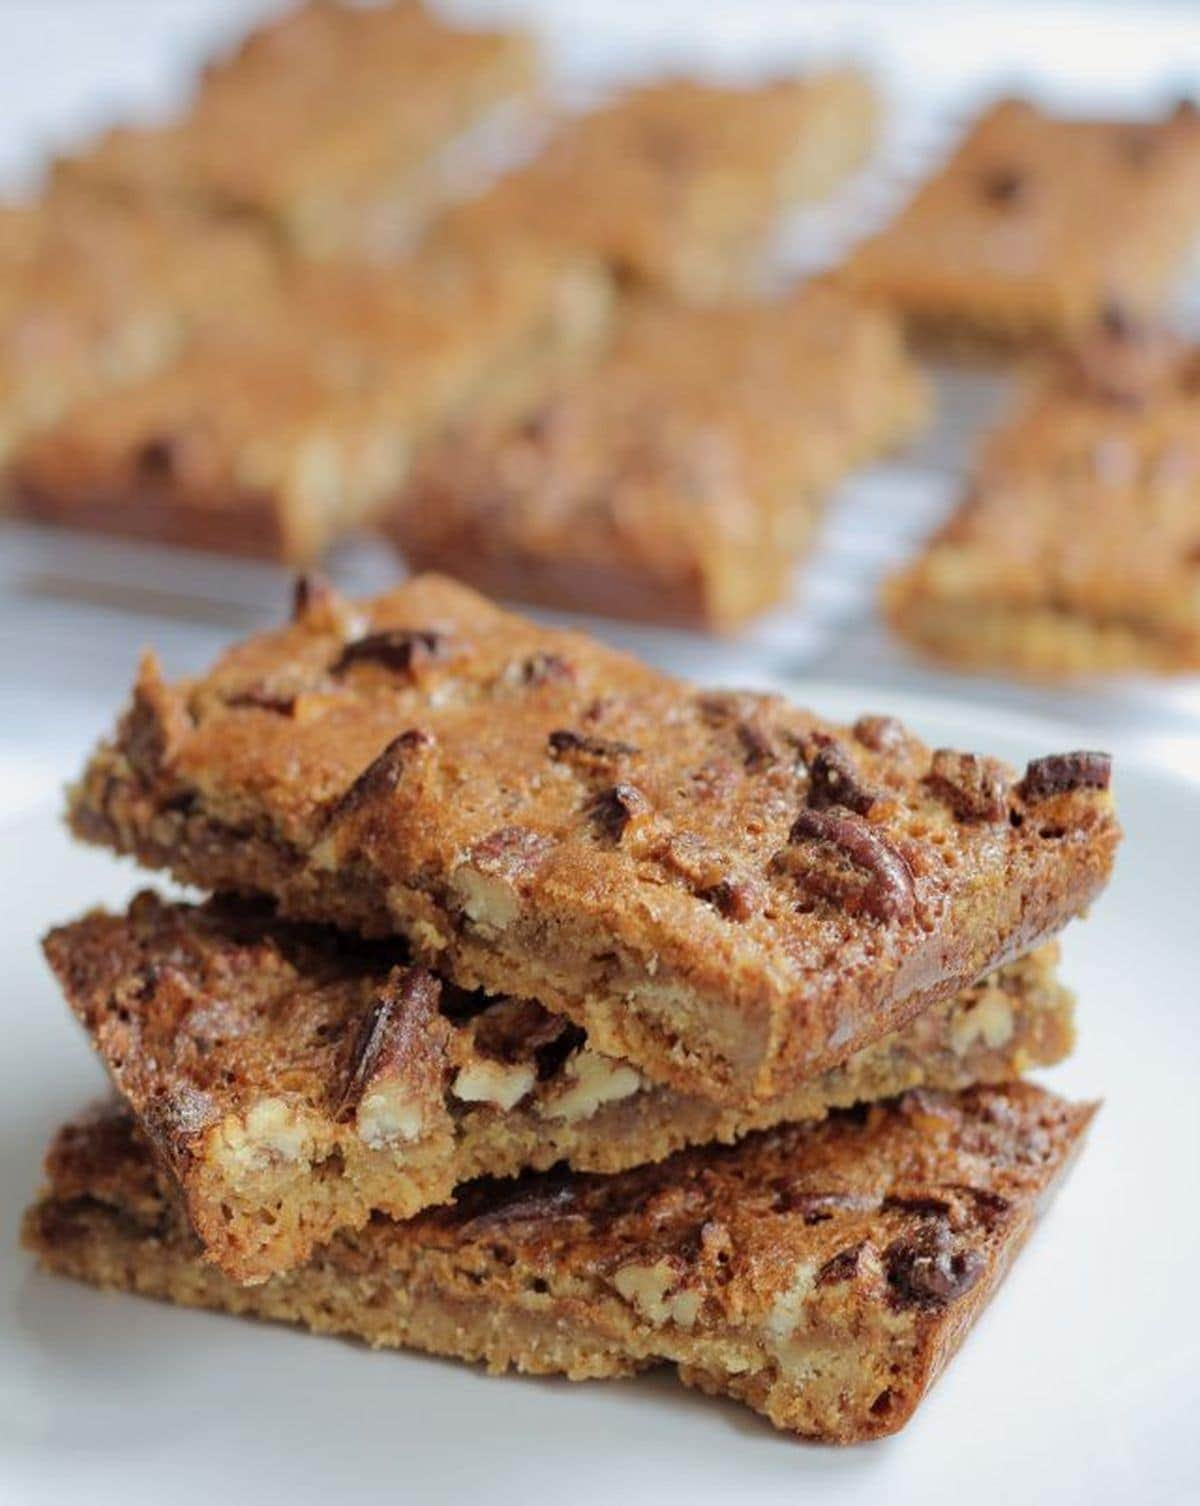 Three pecan nut biscuit bars one on top of the other with the rest of the bars on a wire baking rack behind.